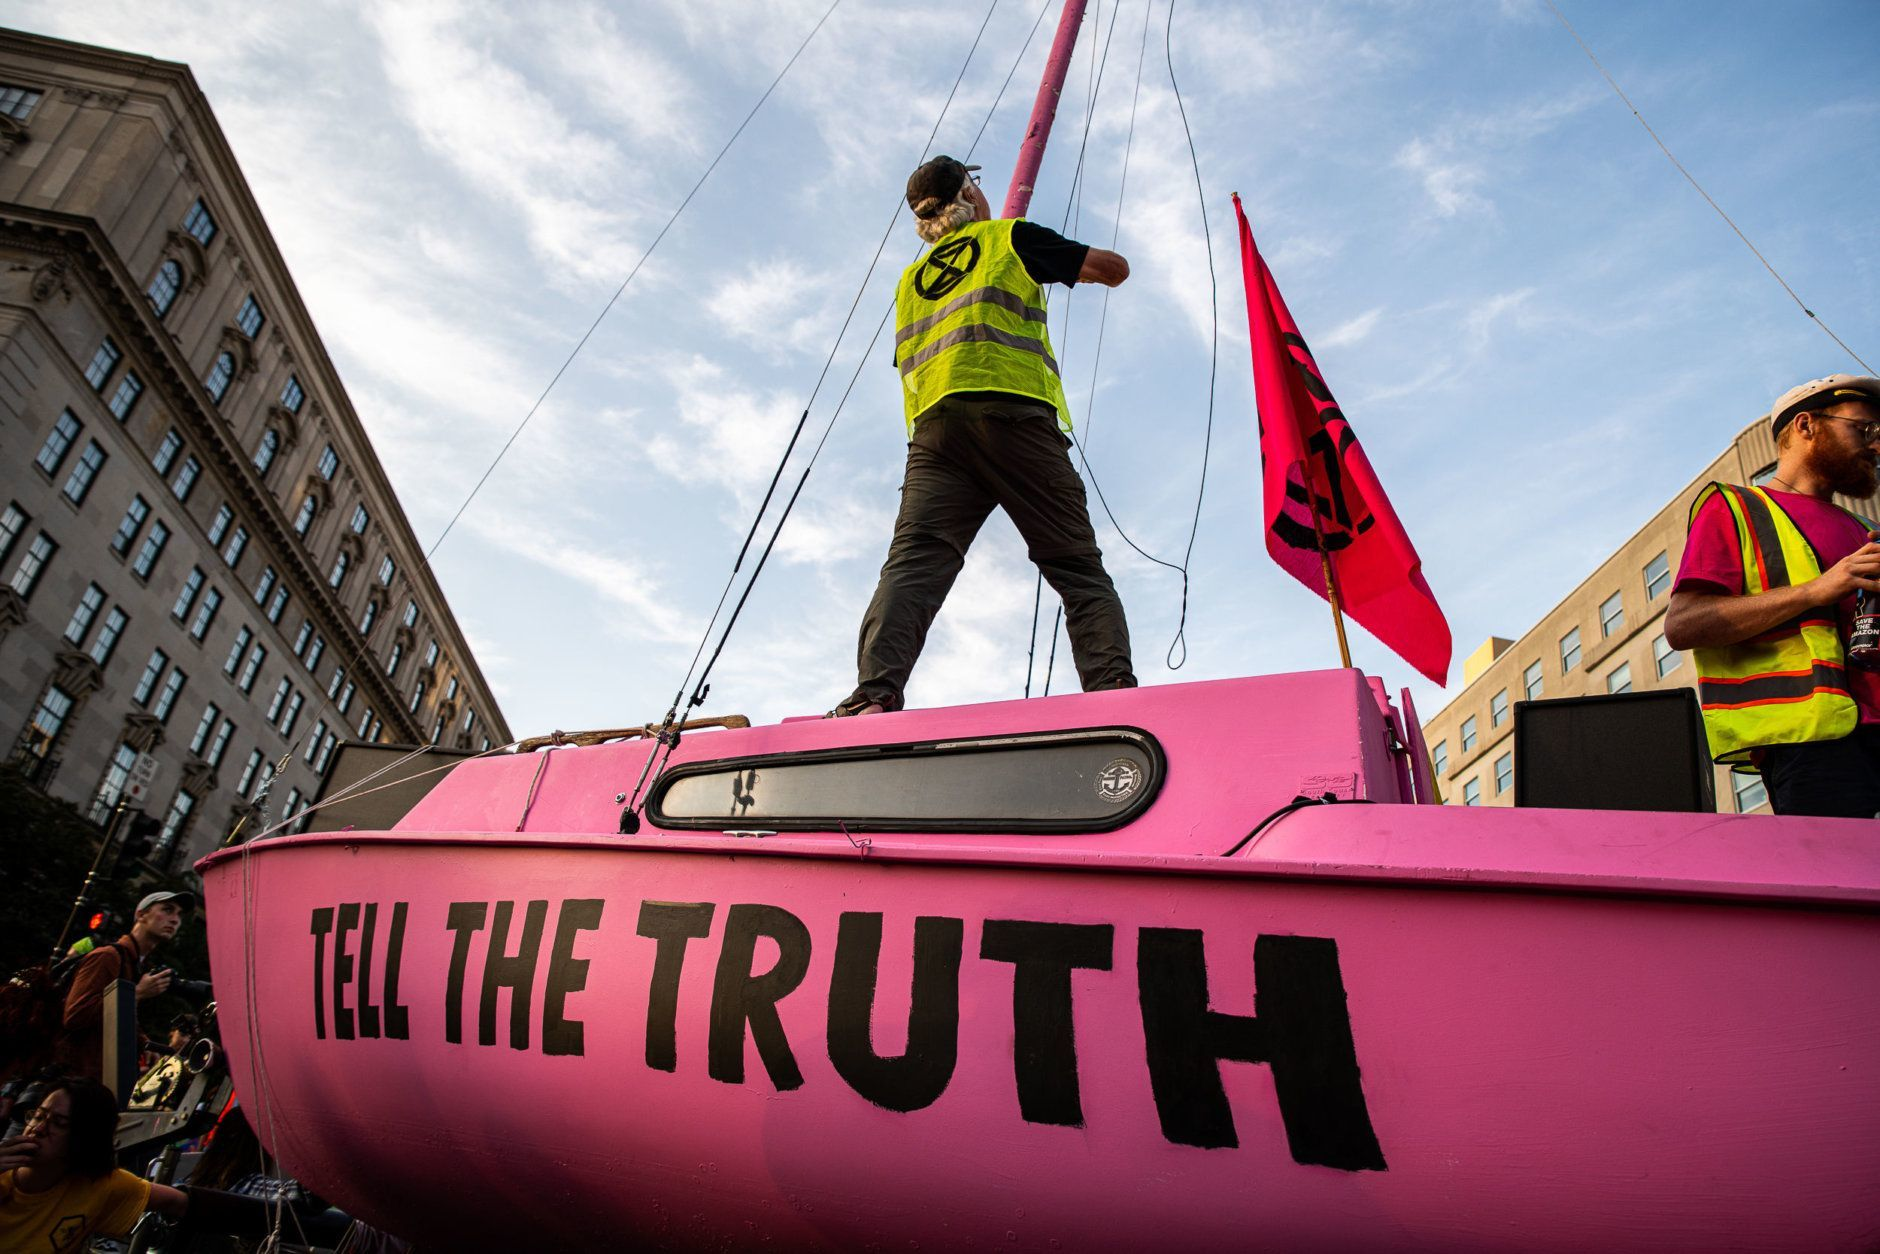 A member of Extinction rebellion hoists the group's hourglass emblem on a sailboat blocking the intersection of K and 16th streets in downtown D.C. on Sept. 23, 2019. Environmental activists pressured lawmakers to declare a climate change emergency by paralyzing morning traffic in the nation's capital. (WTOP/Alejandro Alvarez)